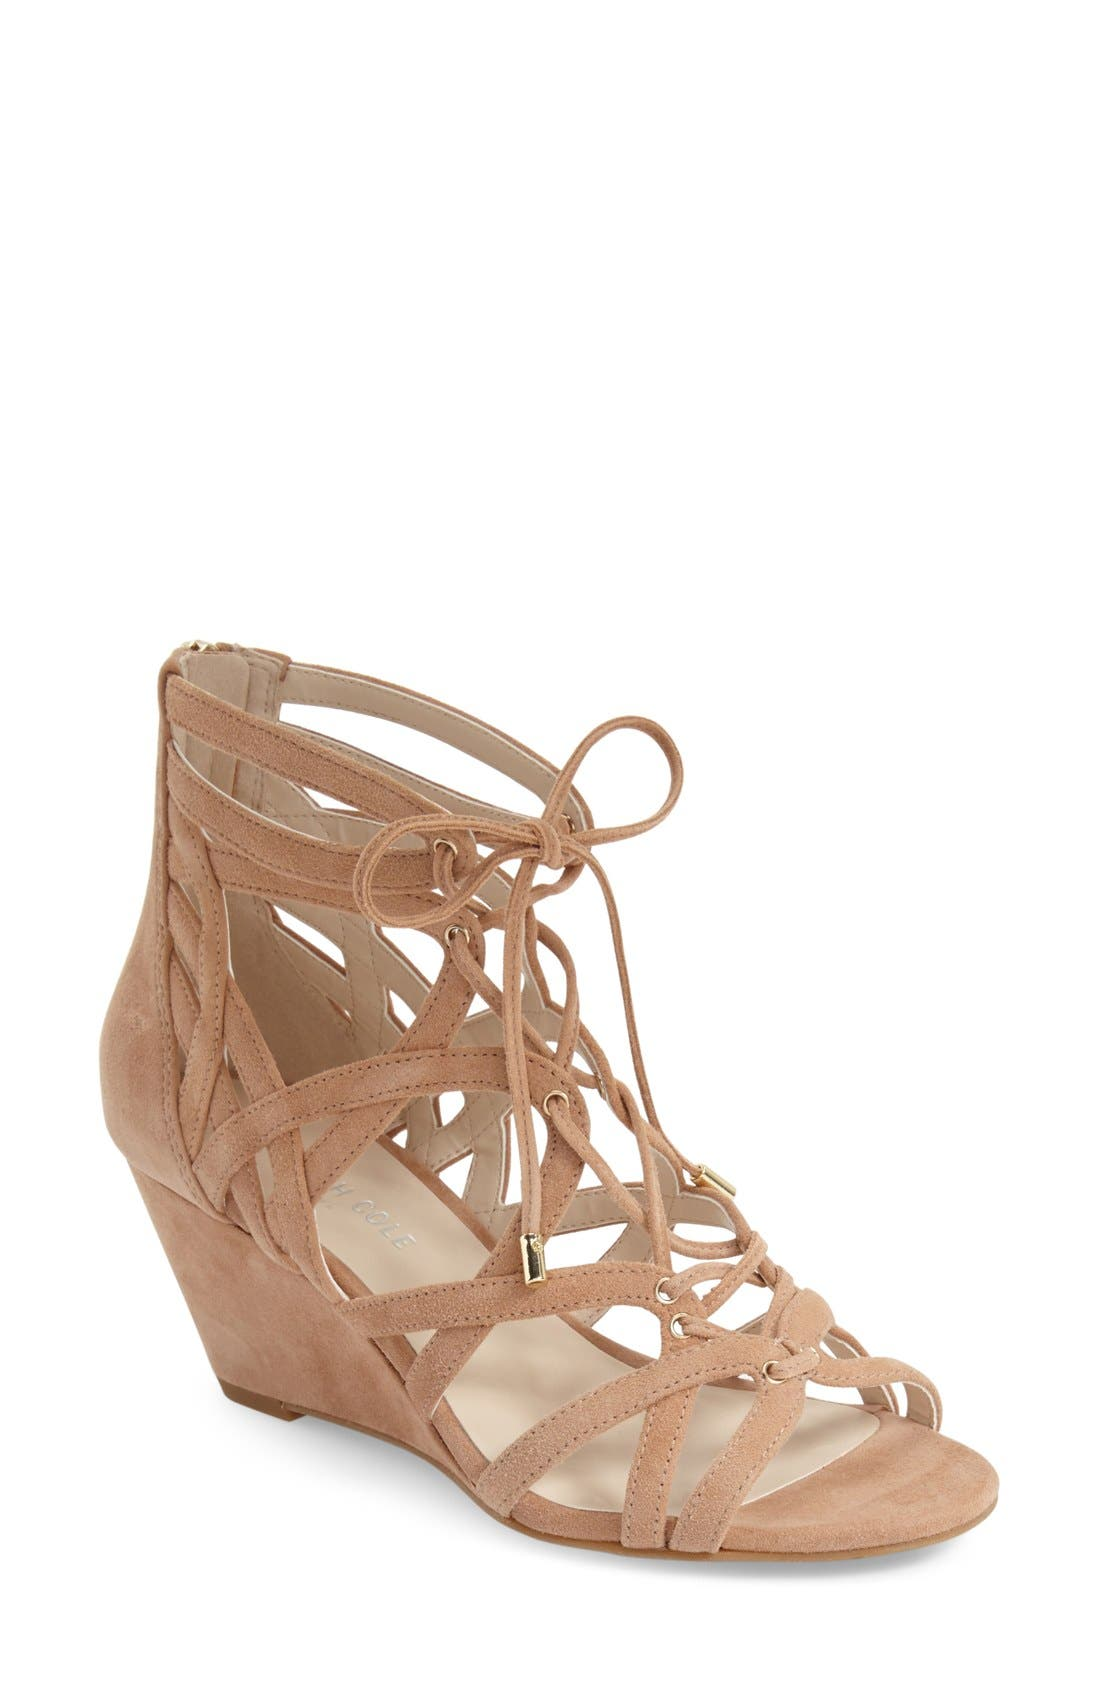 Main Image - Kenneth Cole New York 'Dylan' Wedge Sandal (Women)